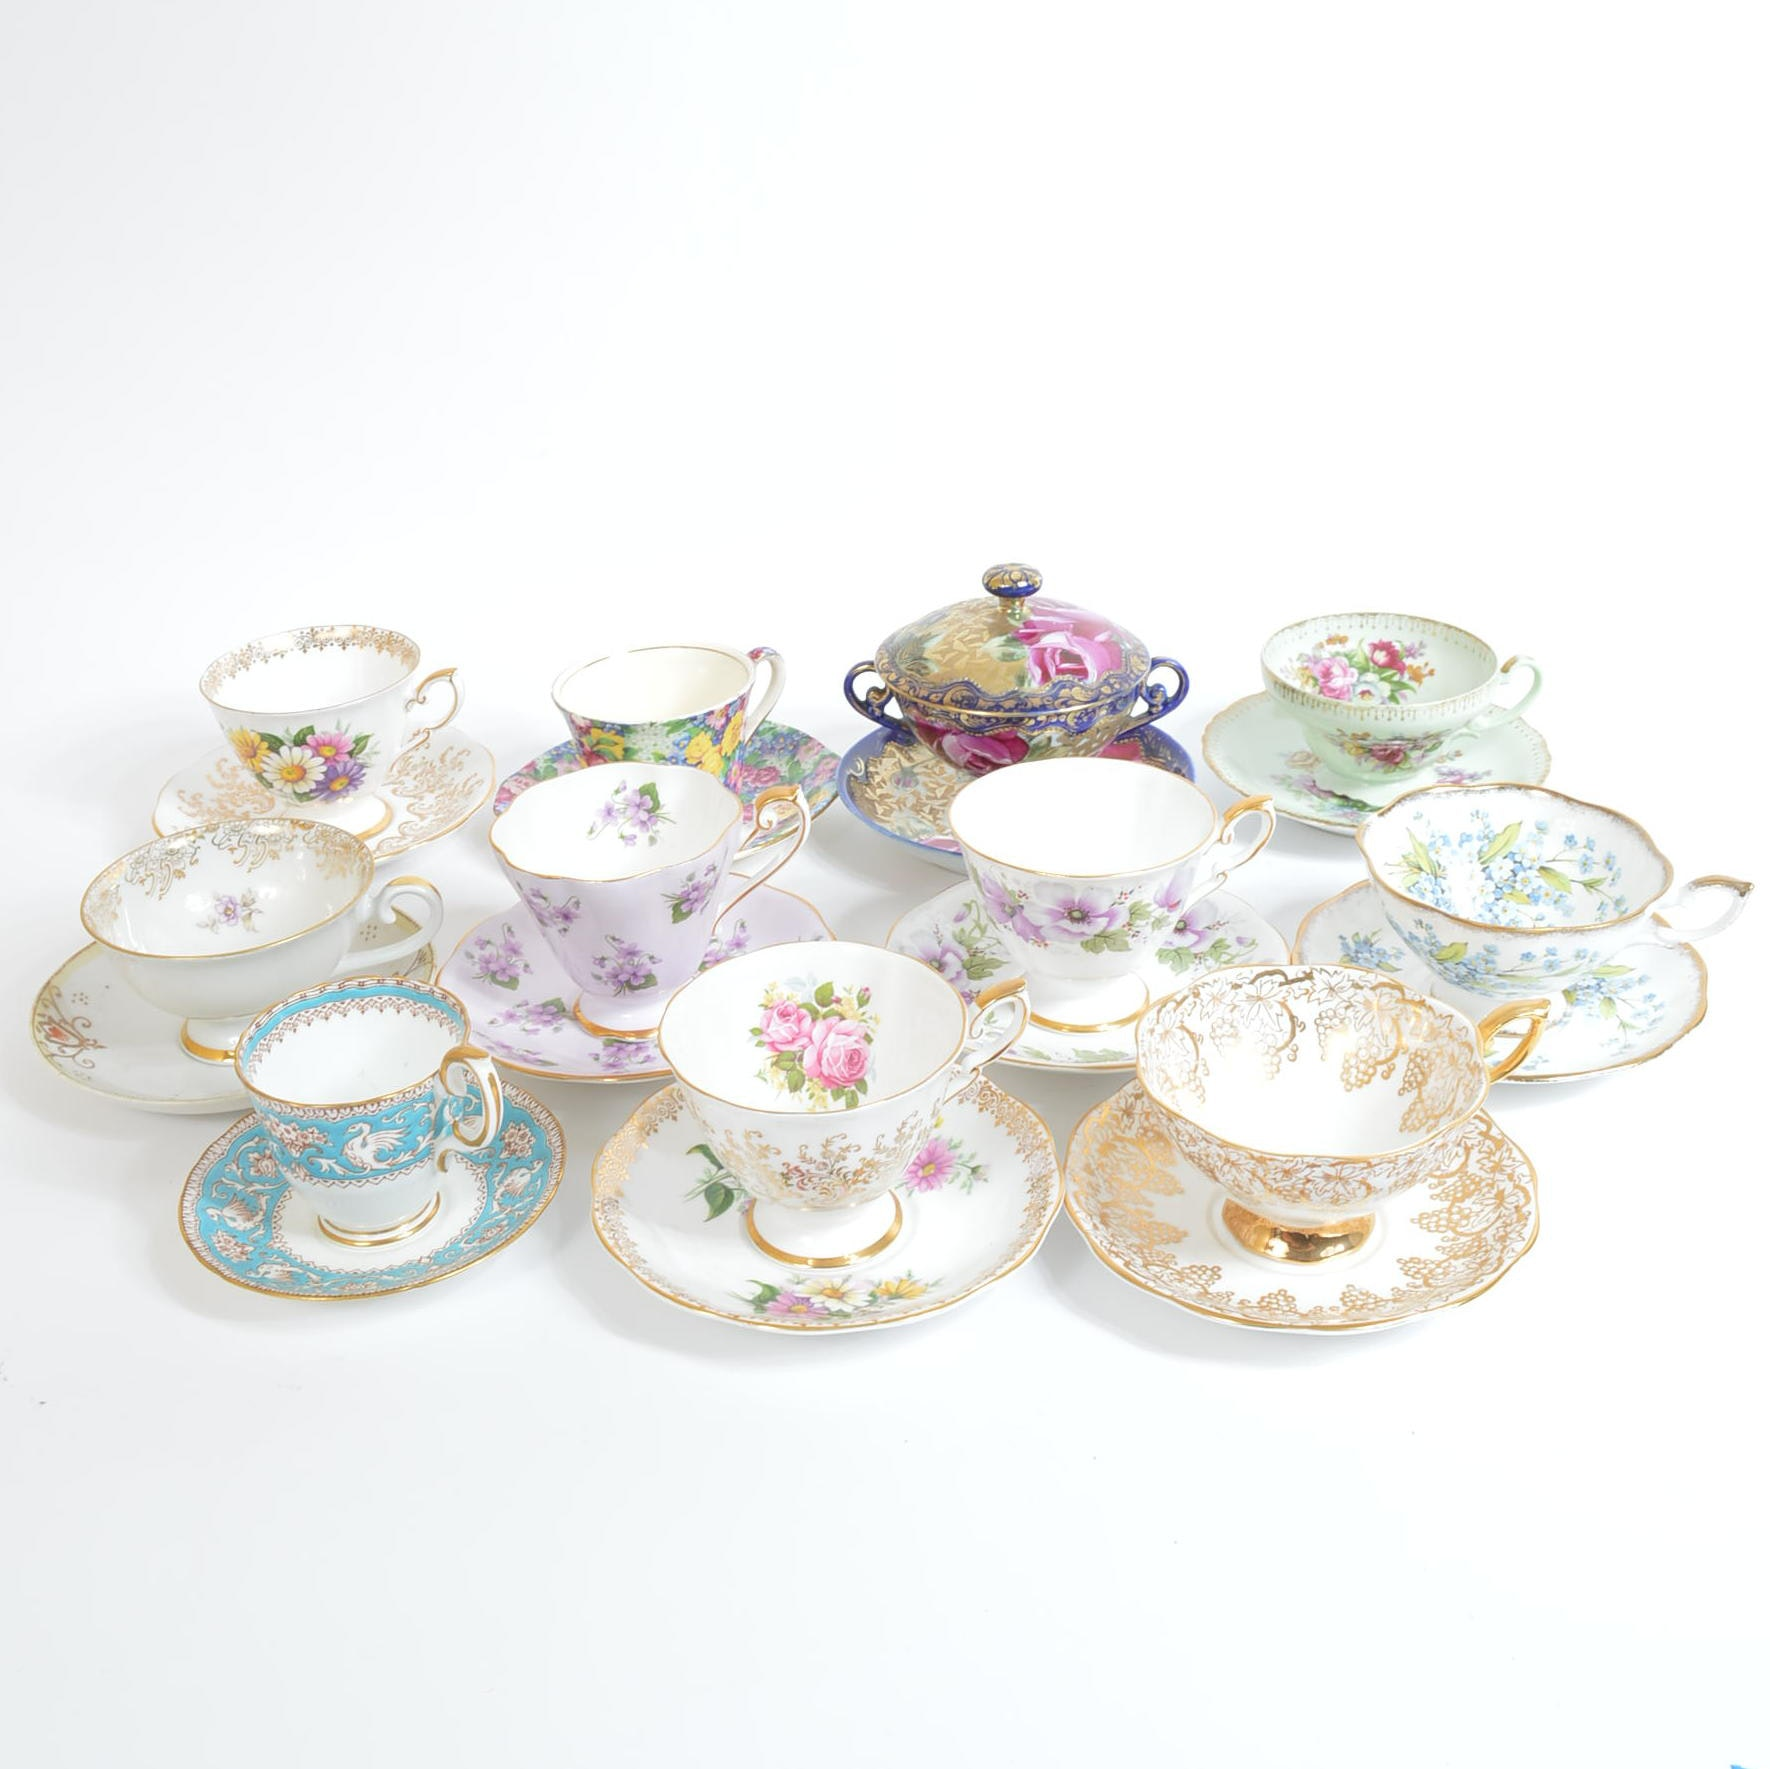 Assortment of Teacups and Saucers